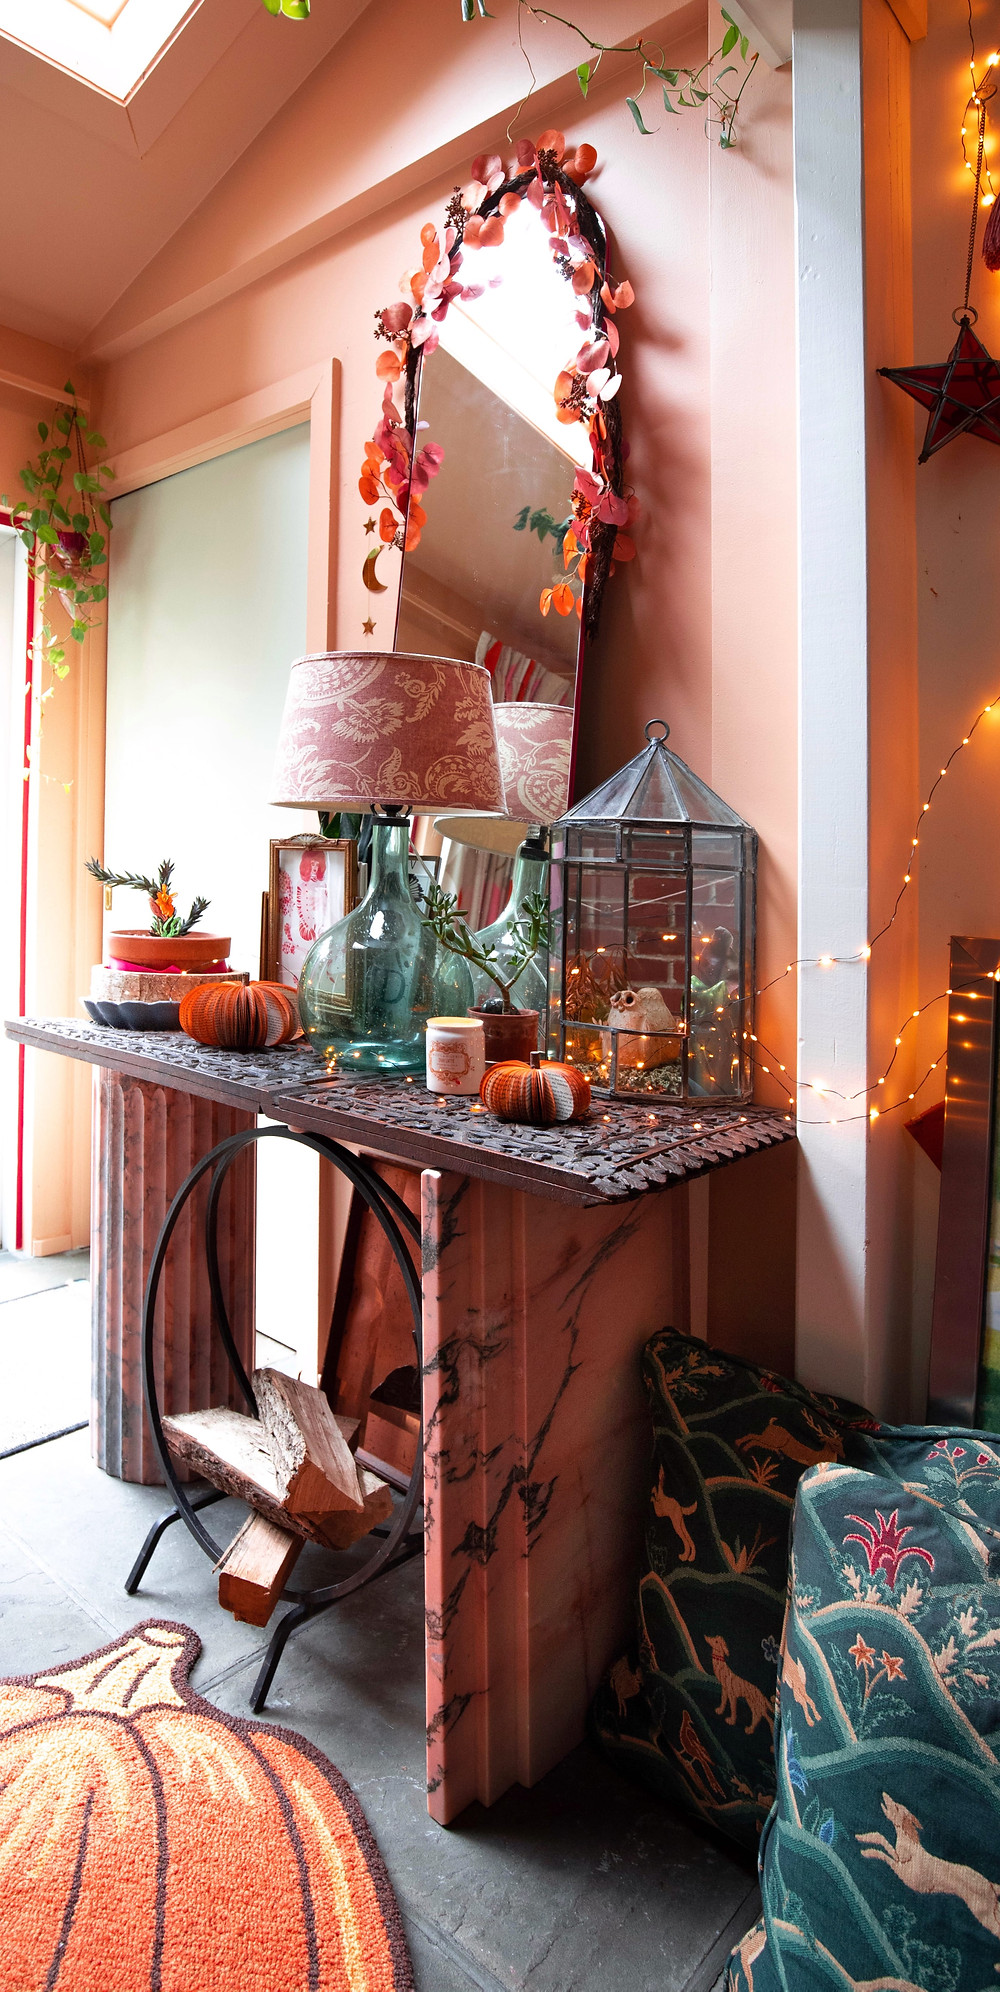 Front hall fall table decor with pink/orange eucalyptus garland, gold moon and star garland, paper book handmade pumpkins, engraved wood table top, terrarium with owls. Pink marble base, arched mirror.